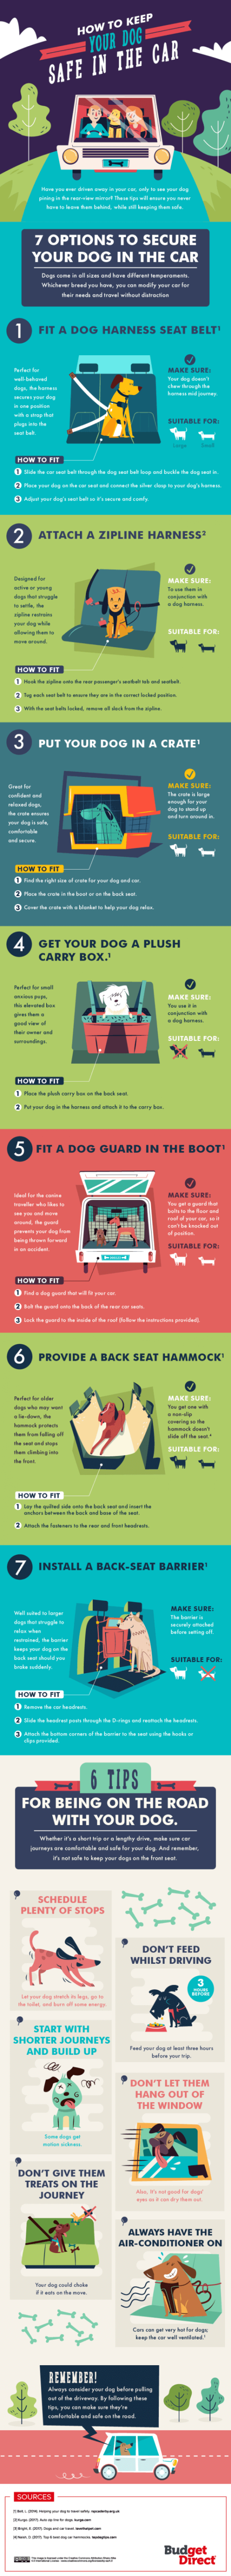 How-to-keep-dog-safe-in-the-car-535x5975